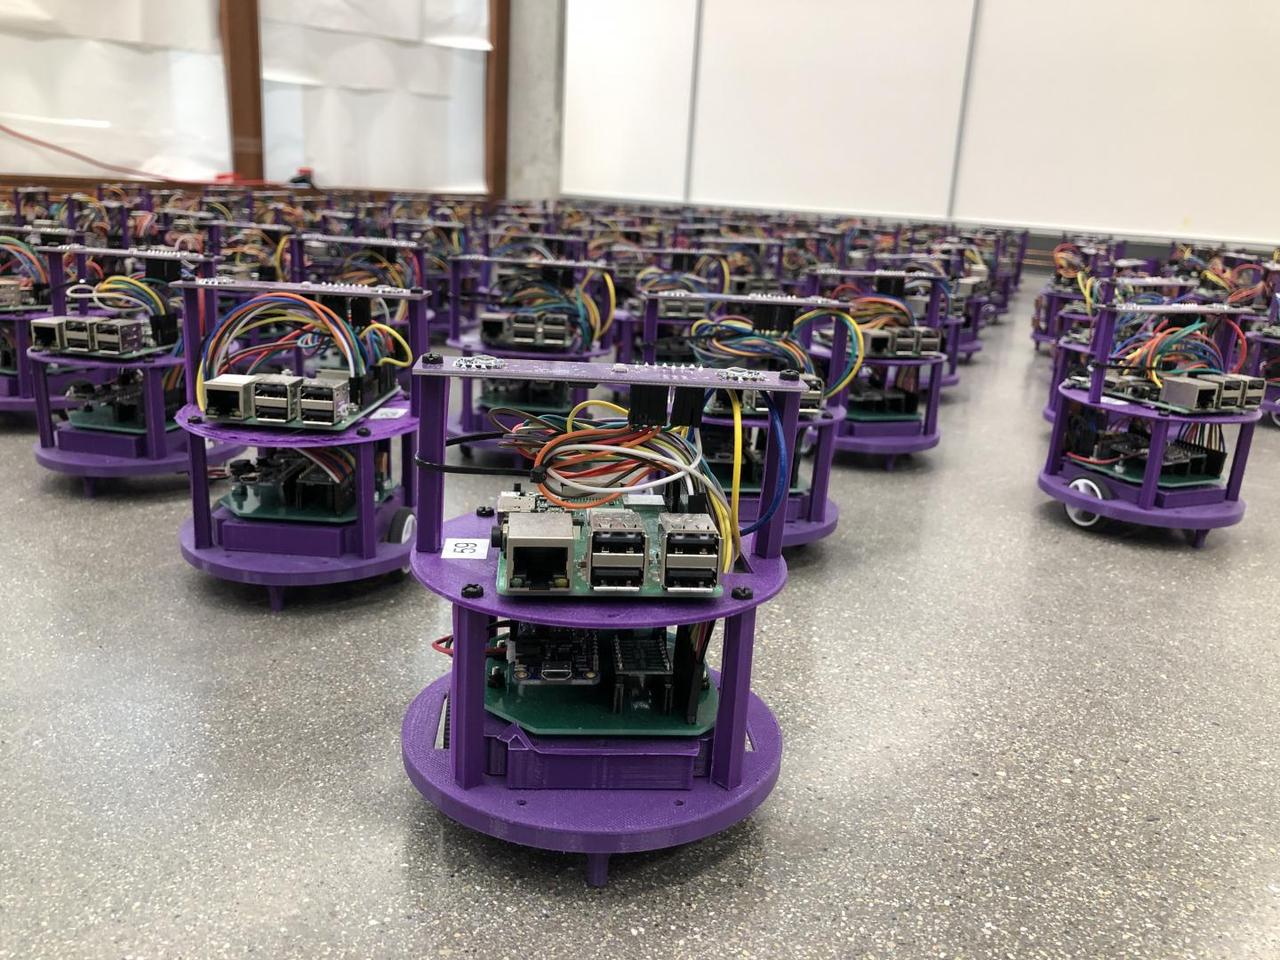 A new control algorithm for swarms of small robots could serve as a basis for autonomous vehicles, researchers say